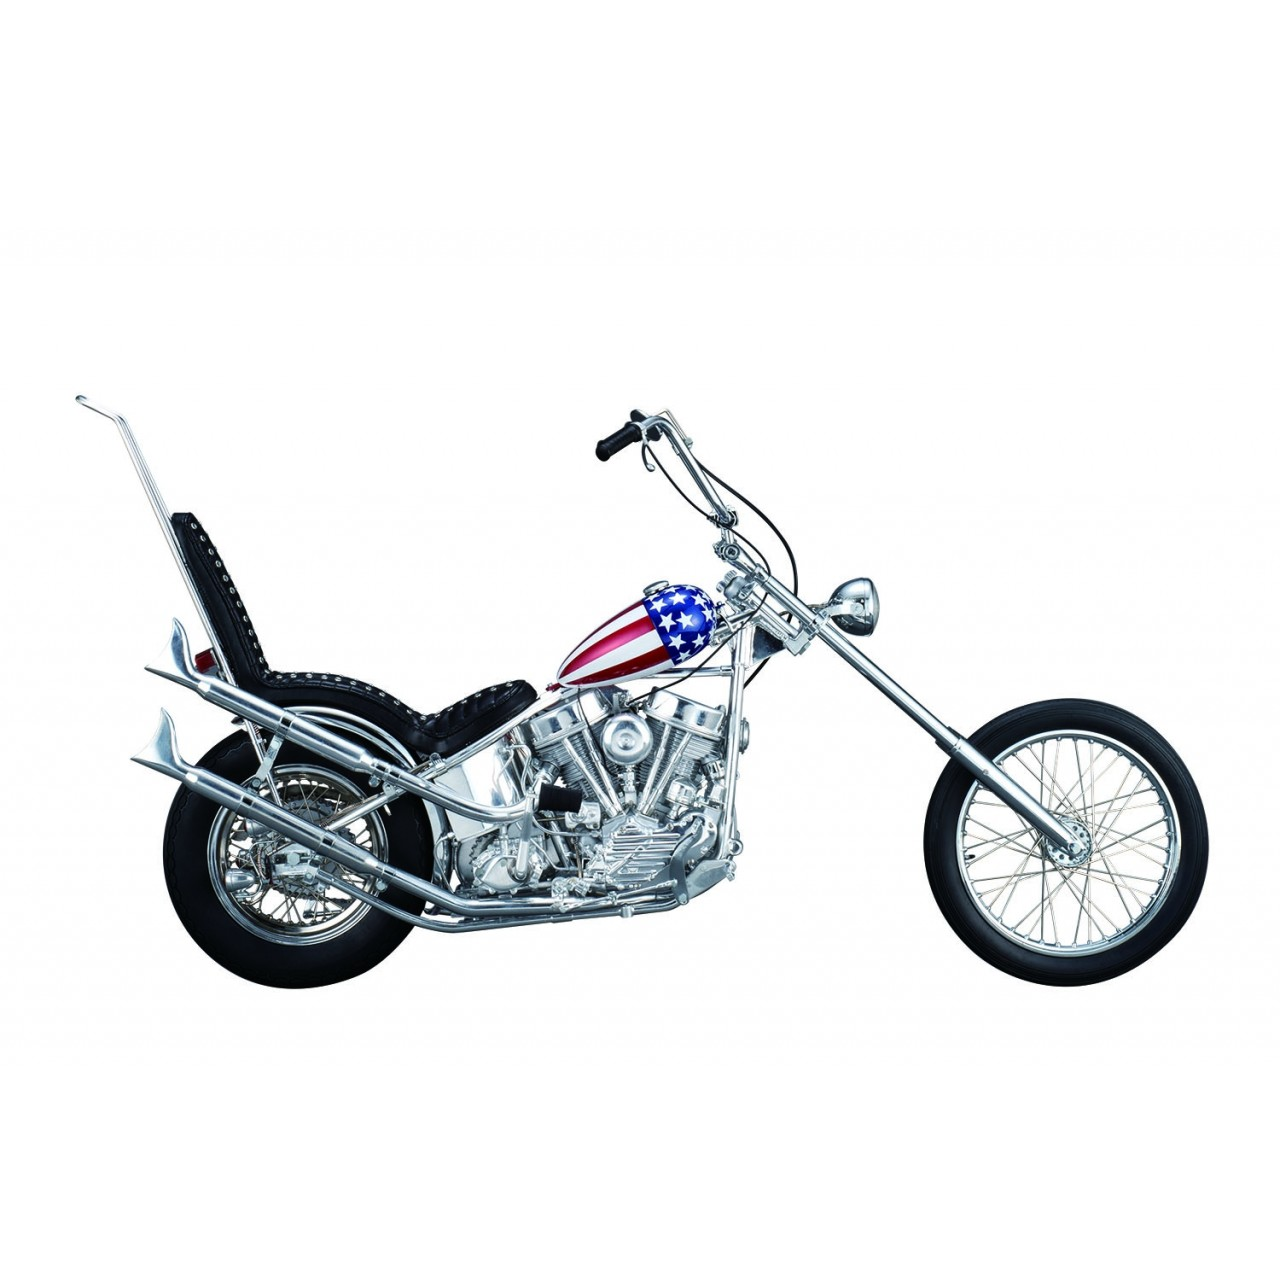 captain america motorcycle 1 4 model modelspace. Black Bedroom Furniture Sets. Home Design Ideas